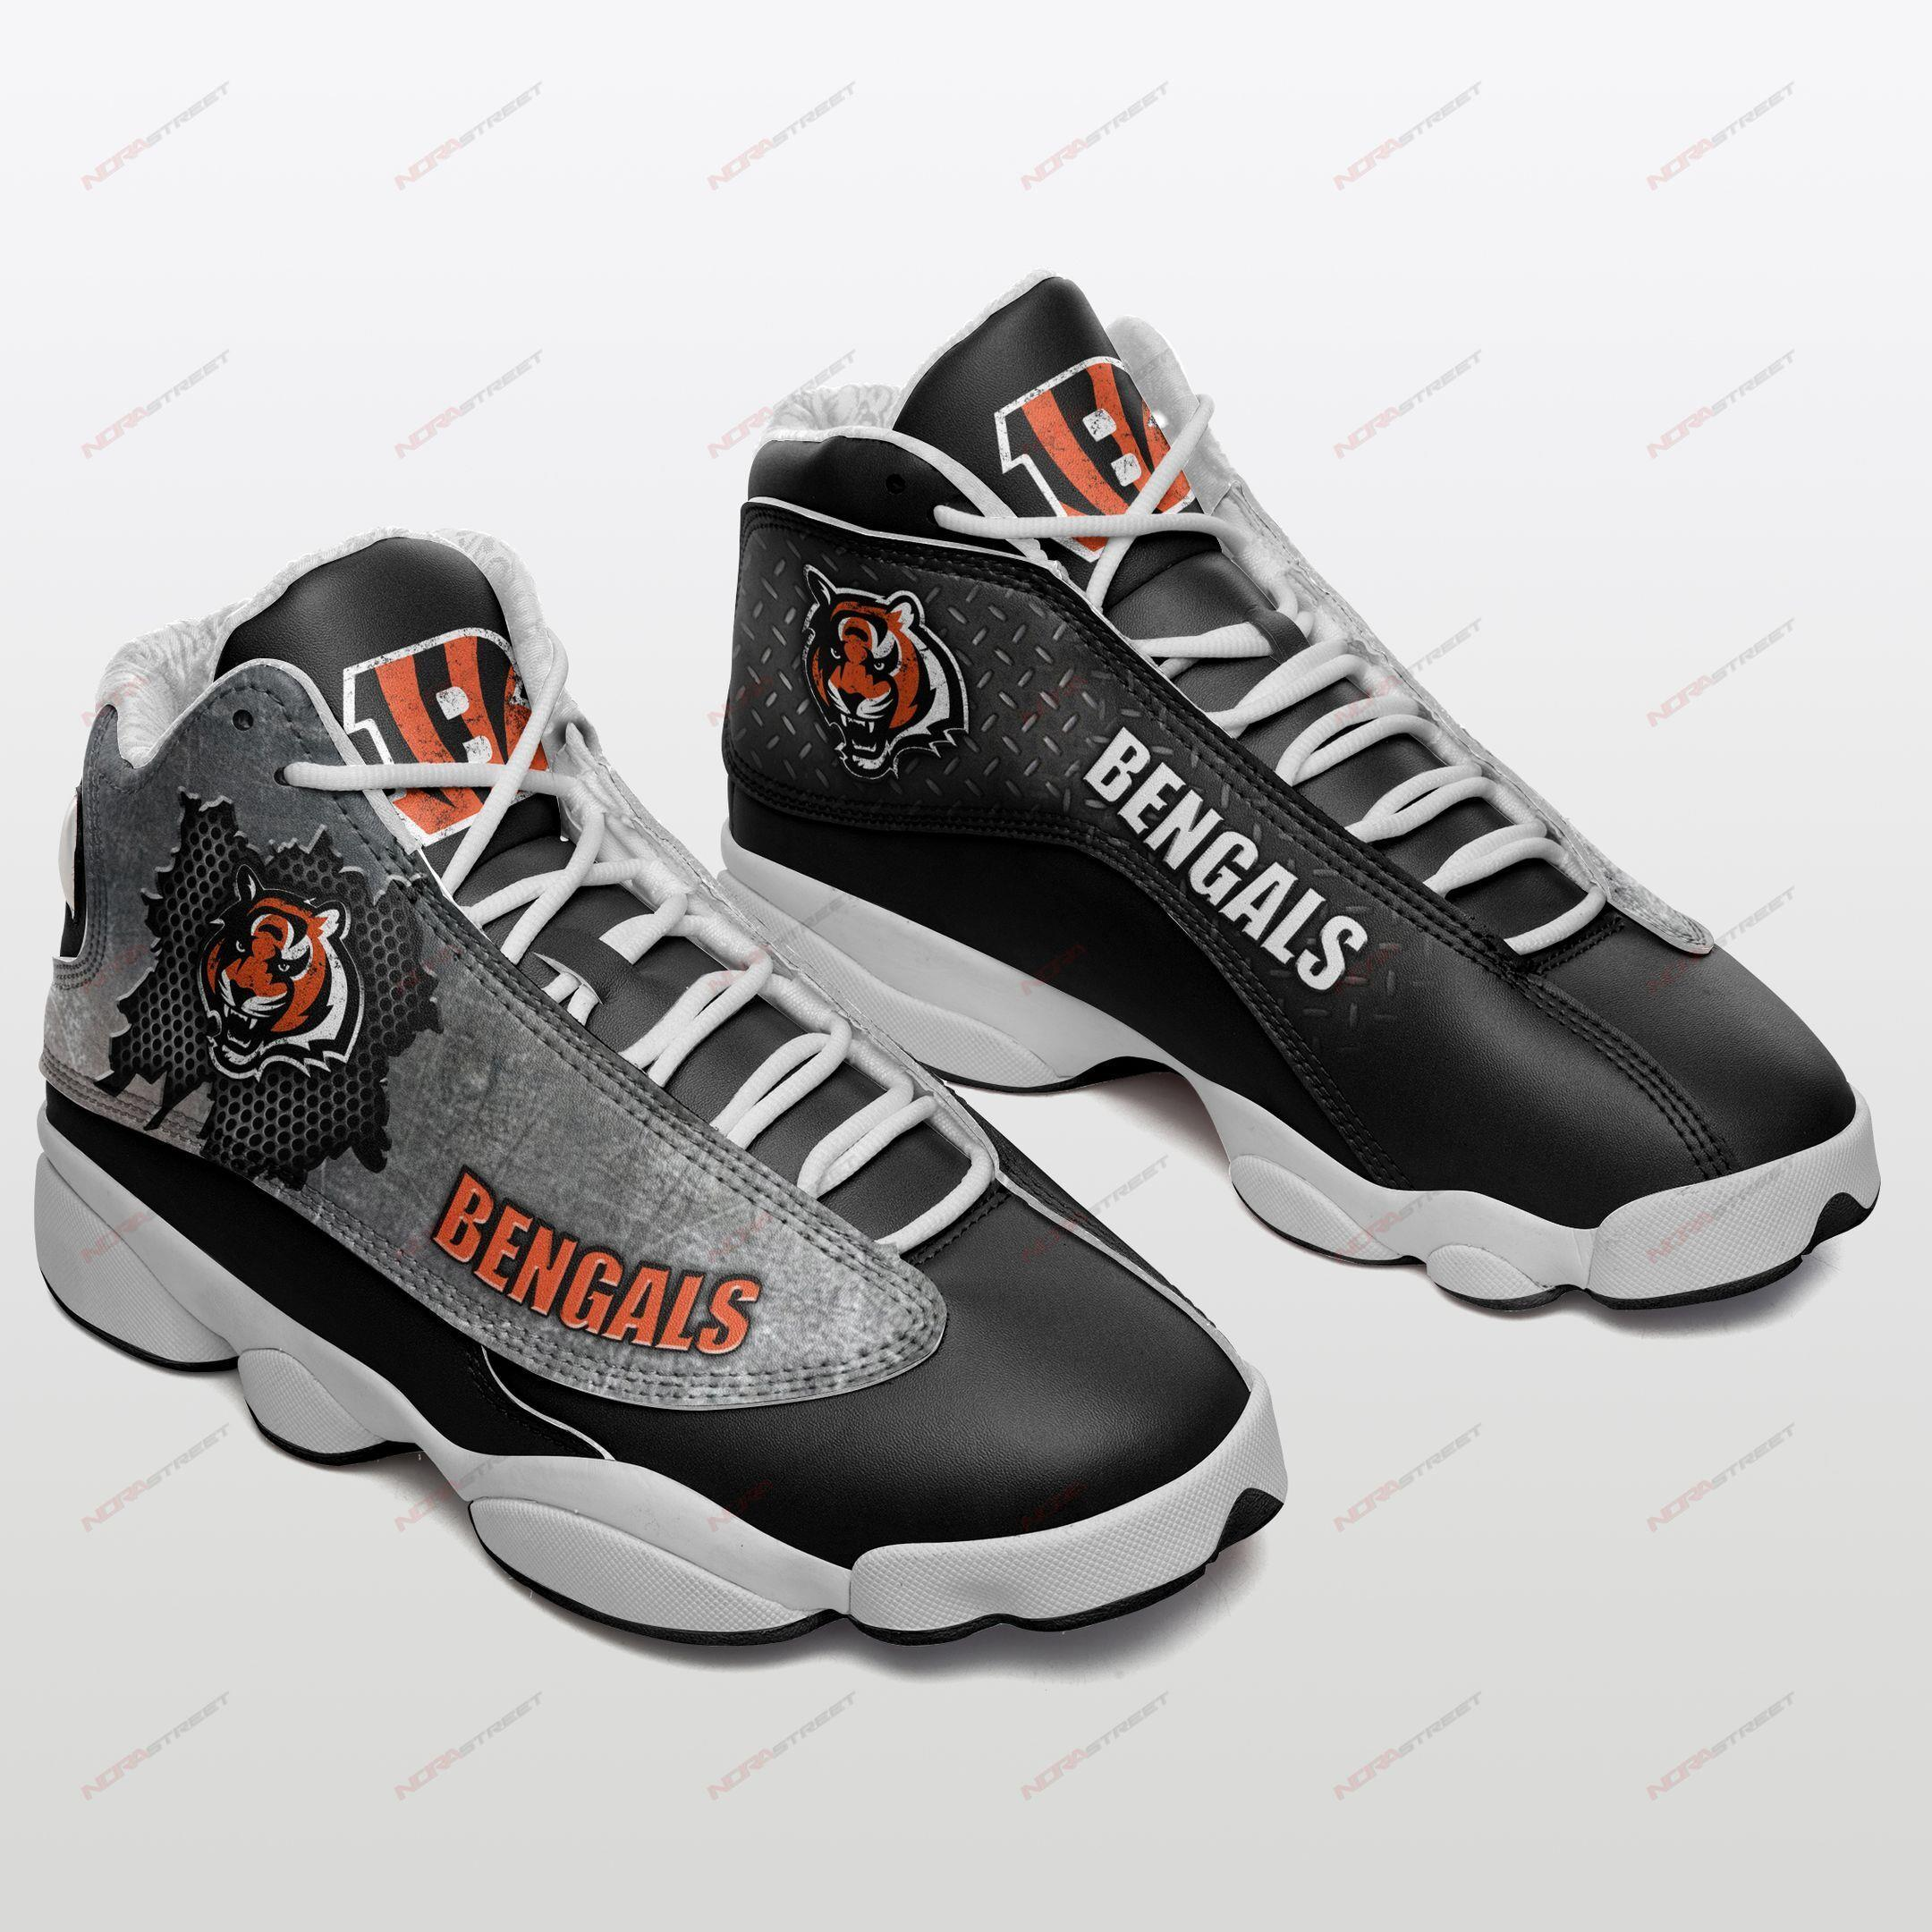 Cincinnati Bengals Air Jordan 13 Sneakers Sport Shoes Full Size